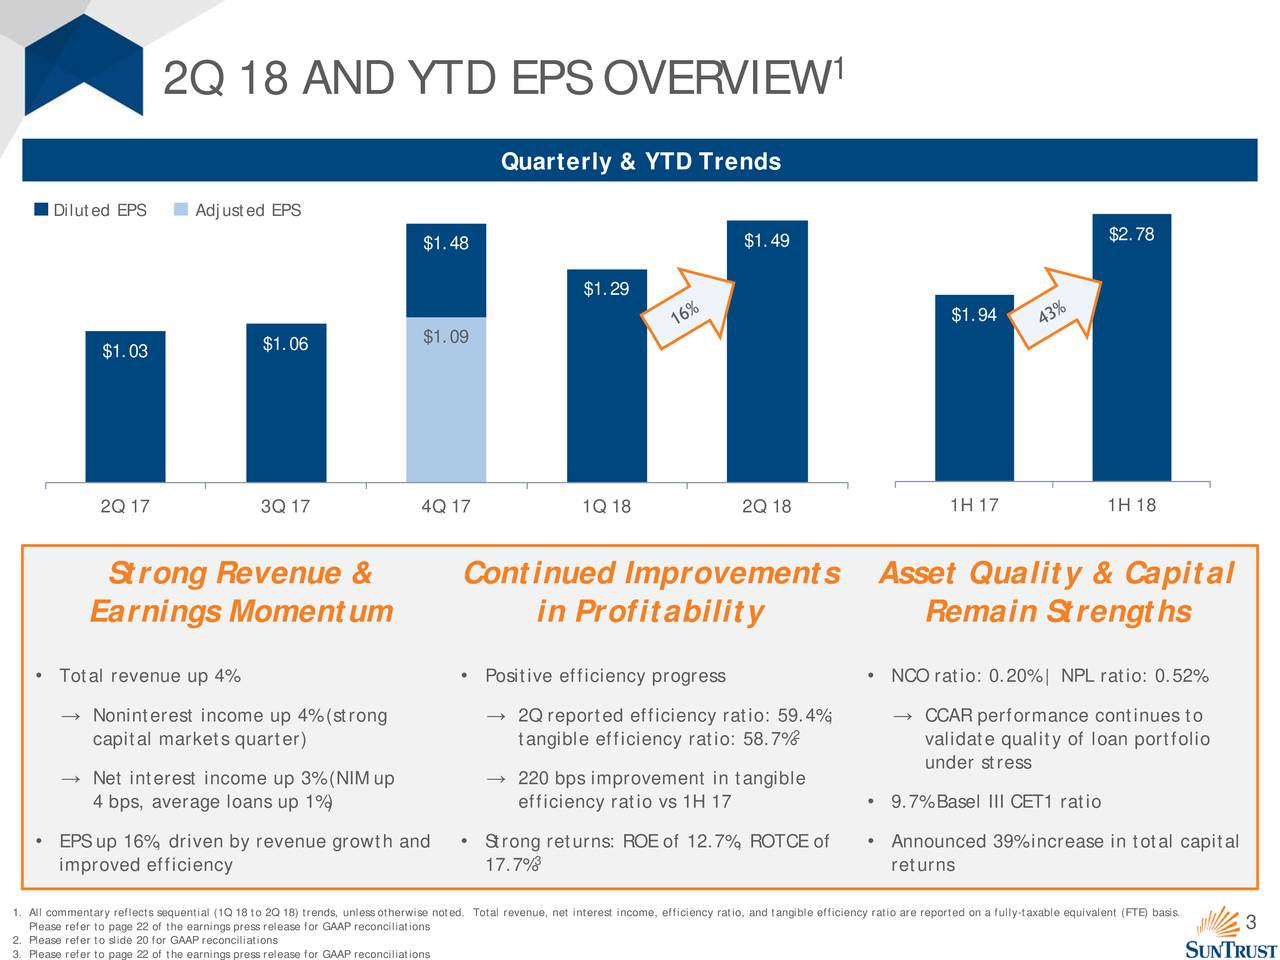 2Q 18 AND YTD EPS OVERVIEW Quarterly & YTD Trends Diluted EPS Adjusted EPS $1.48 $1.49 $2.78 $1.29 $1.94 $1.03 $1.06 $1.09 2Q 17 3Q 17 4Q 17 1Q 18 2Q 18 1H 17 1H 18 Strong Revenue & Continued Improvements Asset Quality & Capital Earnings Momentum in Profitability Remain Strengths • Total revenue up 4% • Positive efficiency progress • NCO ratio: 0.20% | NPL ratio: 0.52% → Noninterest income up 4% (strong → 2Q reported efficiency ratio: 59.4%; → CCAR performance continues to capital markets quarter) tangible efficiency ratio: 58.7% validate quality of loan portfolio → Net interest income up 3% (NIM up → 220 bps improvement in tangible under stress 4 bps, average loans up 1%) efficiency ratio vs 1H 17 • 9.7% Basel III CET1 ratio • EPS up 16%, driven by revenue growth and• Strong returns: ROE of 12.7%, ROTCE of• Announced 39% increase in total capital 3 improved efficiency 17.7% returns . All commentary reflects sequential (1Q 18 to 2Q 18) trends, unless otherwise noted. Total revenue, net interest income3 effciiency ratio, and tangible efficiency ratio are reported on a fully-taxable equivalent (FTE) basis. 2. Please refer to slide 20 for GAAP reconciliationsase for GAAP reconciliations